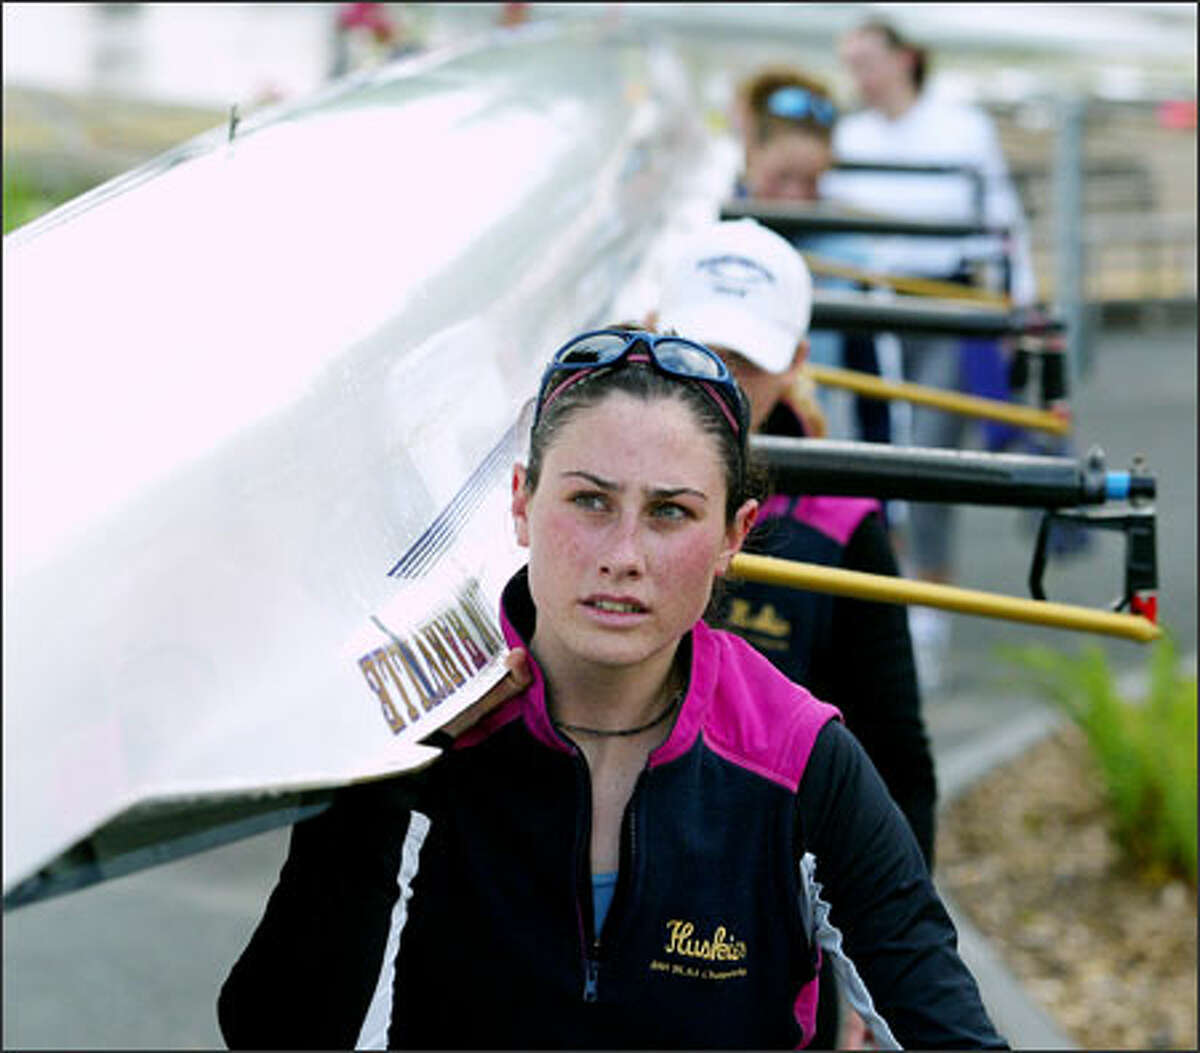 UW rower Marah Connole and her teammates load their boat for the NCAA championship this weekend.